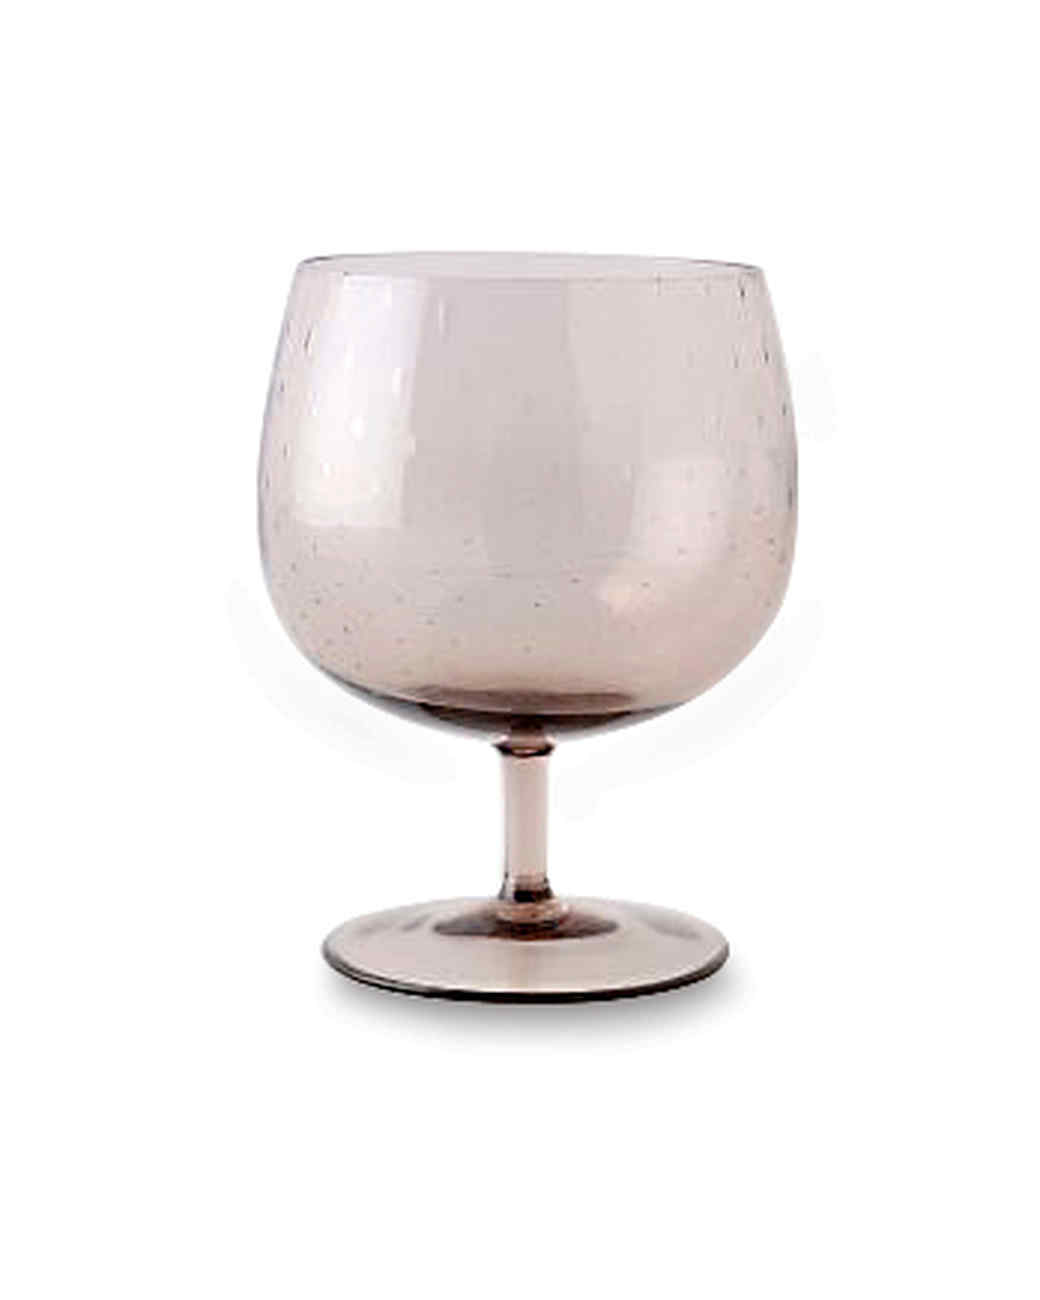 brandy-glass-ms108153.jpg